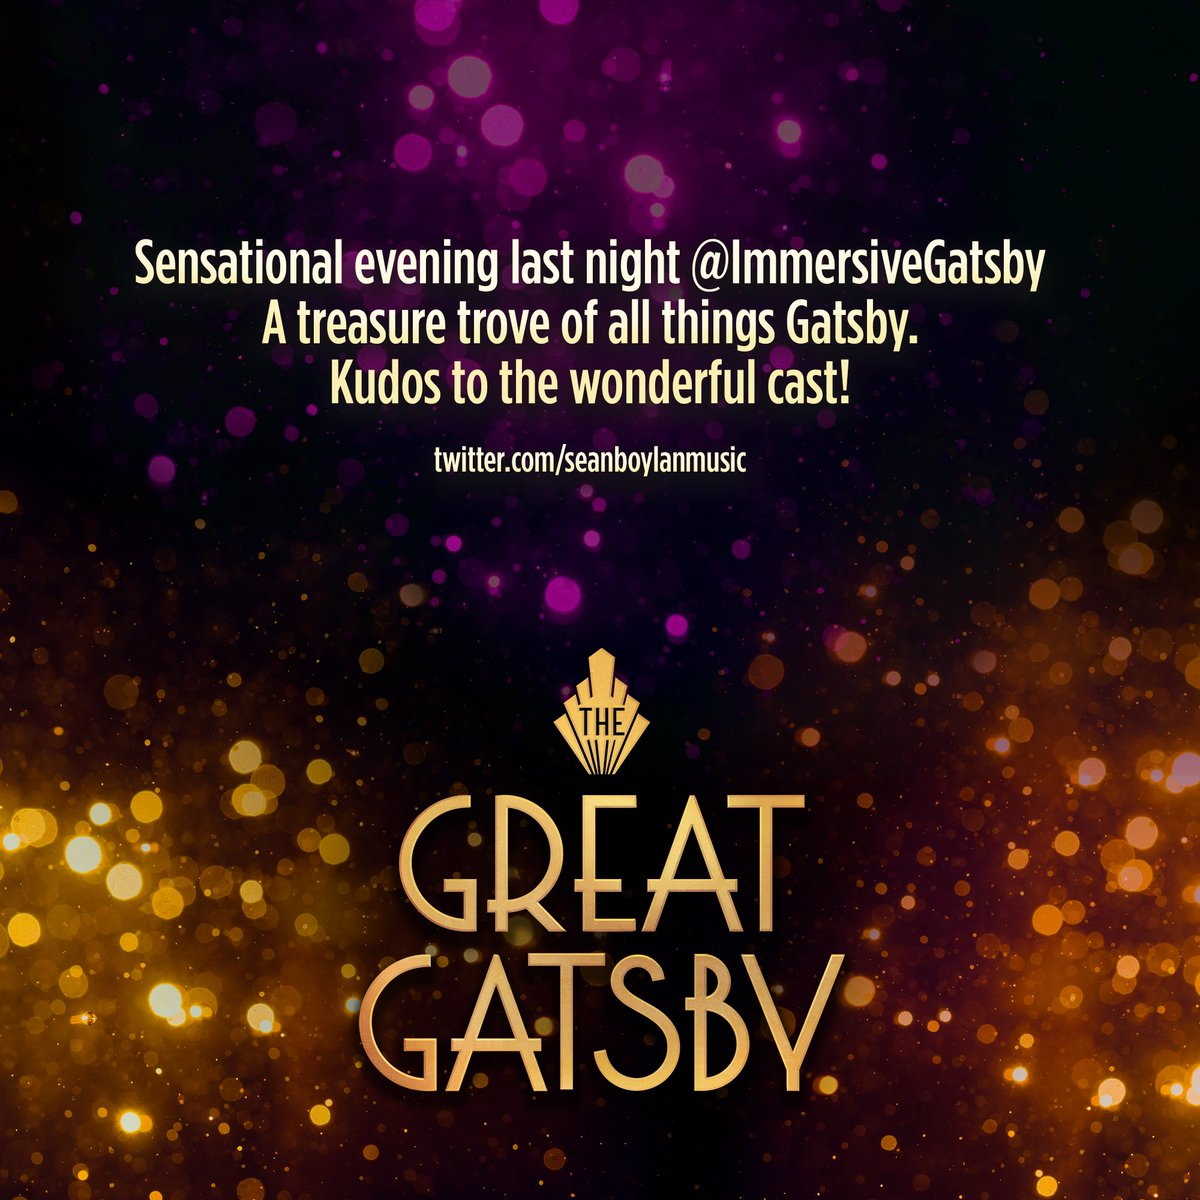 The Great Gatsby (@ImmersiveGatsby) | Twitter